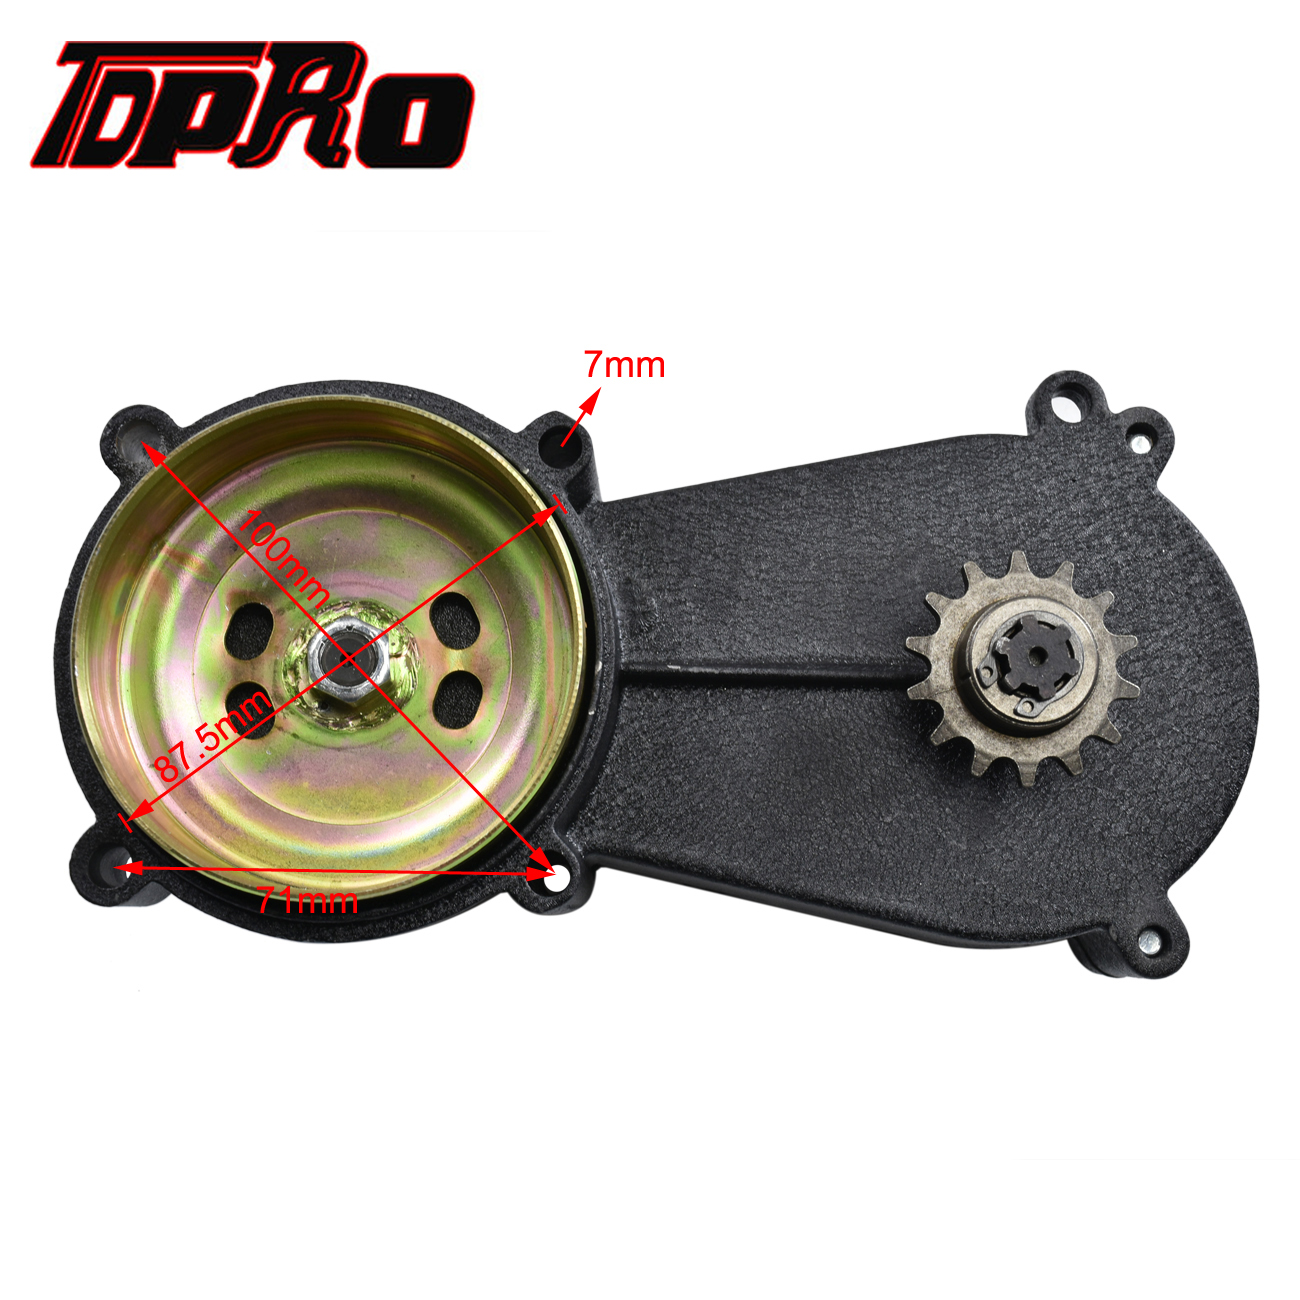 TDPRO 14T T8F Clutch Drum Gear Box Transmission 14 Teeths For fit 47cc 49cc Mini Moto ATV Dirt Bike Pocket Go Kart Chopper Buggy in Sprockets from Automobiles Motorcycles